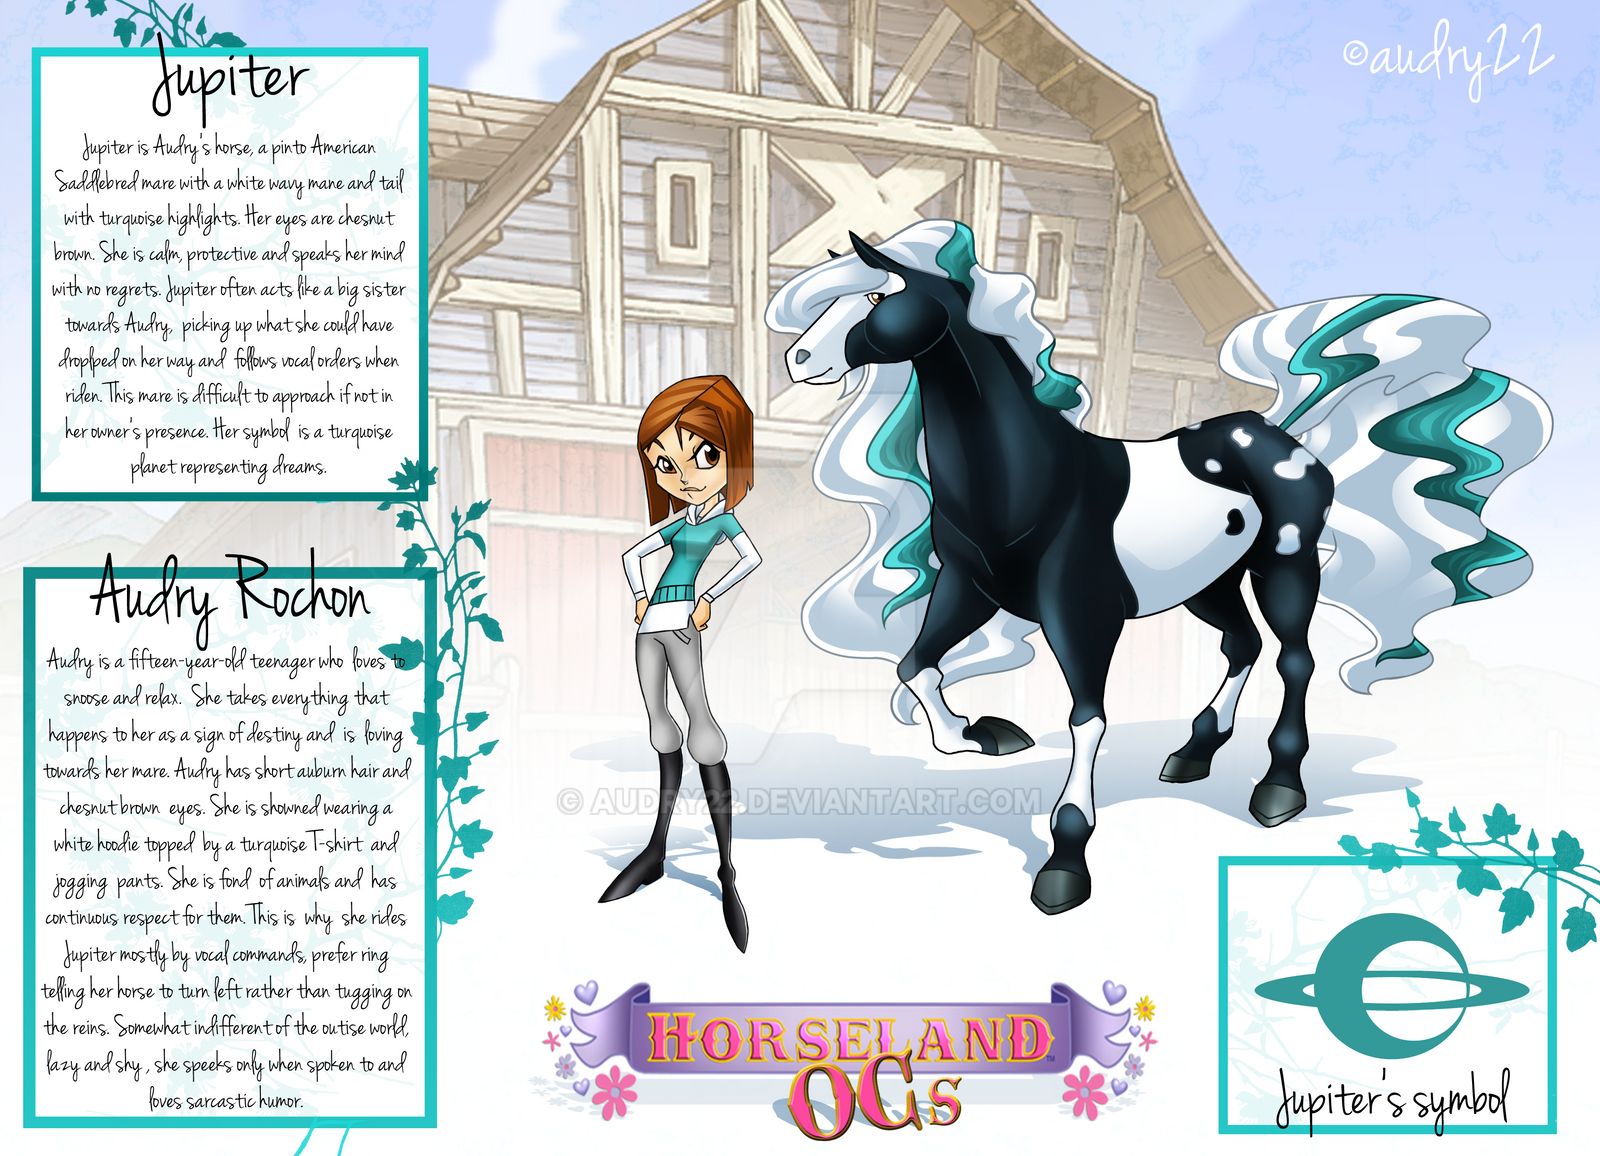 Horseland OCs Audry And Jupiter Refference By Audry22 On